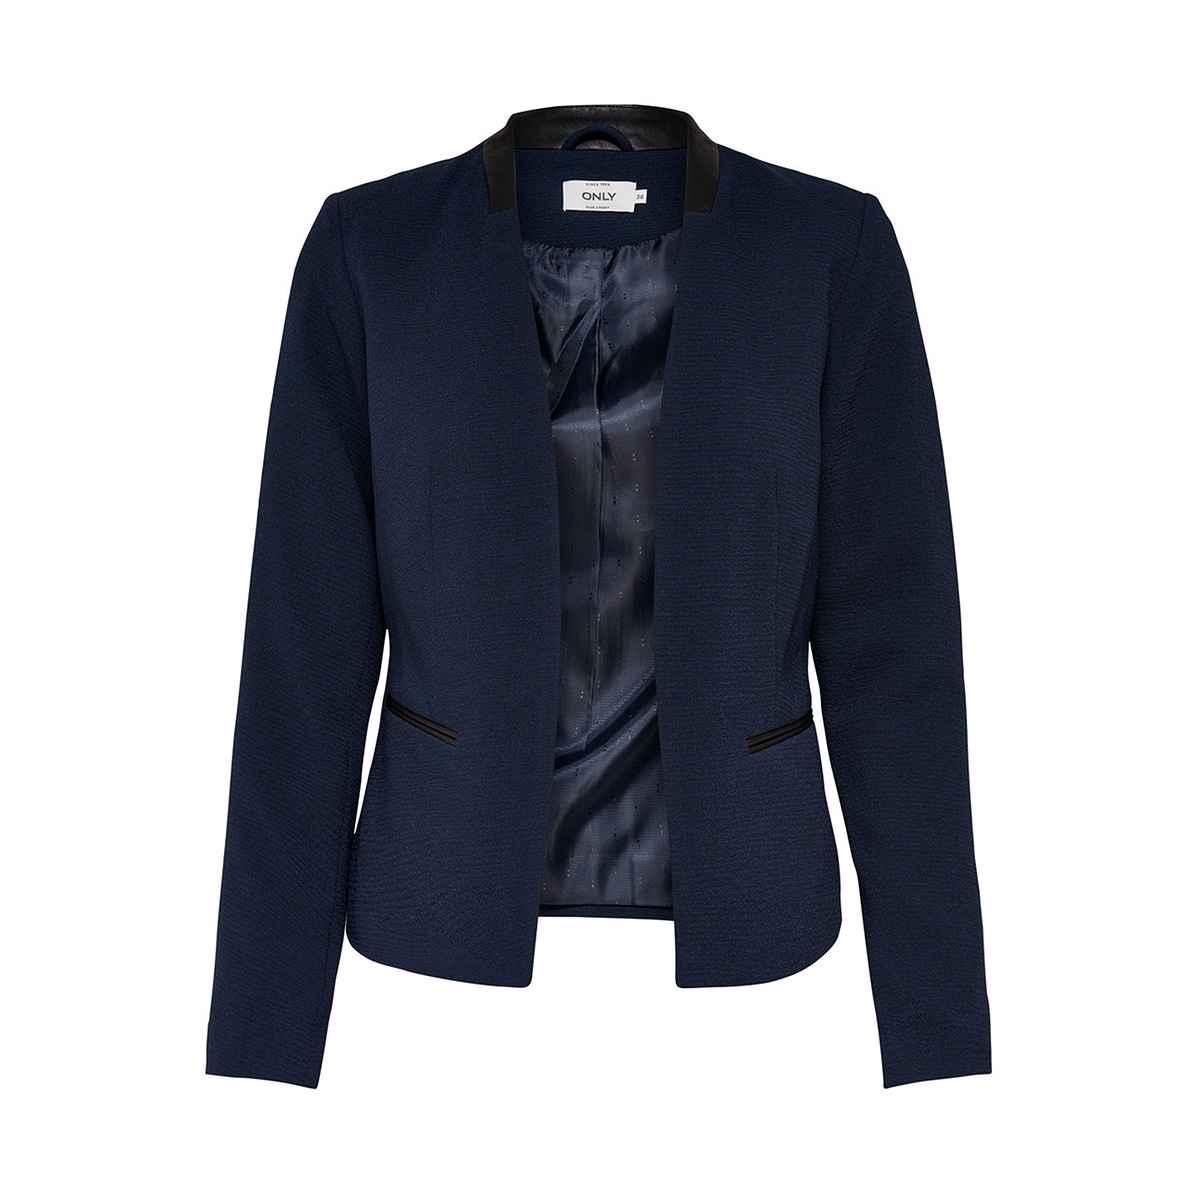 Every Guy Should Own A Navy Blazer — Here's How To Wear One. Megan Willett. Aug. 7, , AM but aside from aa= navy or black shirt, almost any contrasting color (or pattern!) will do.